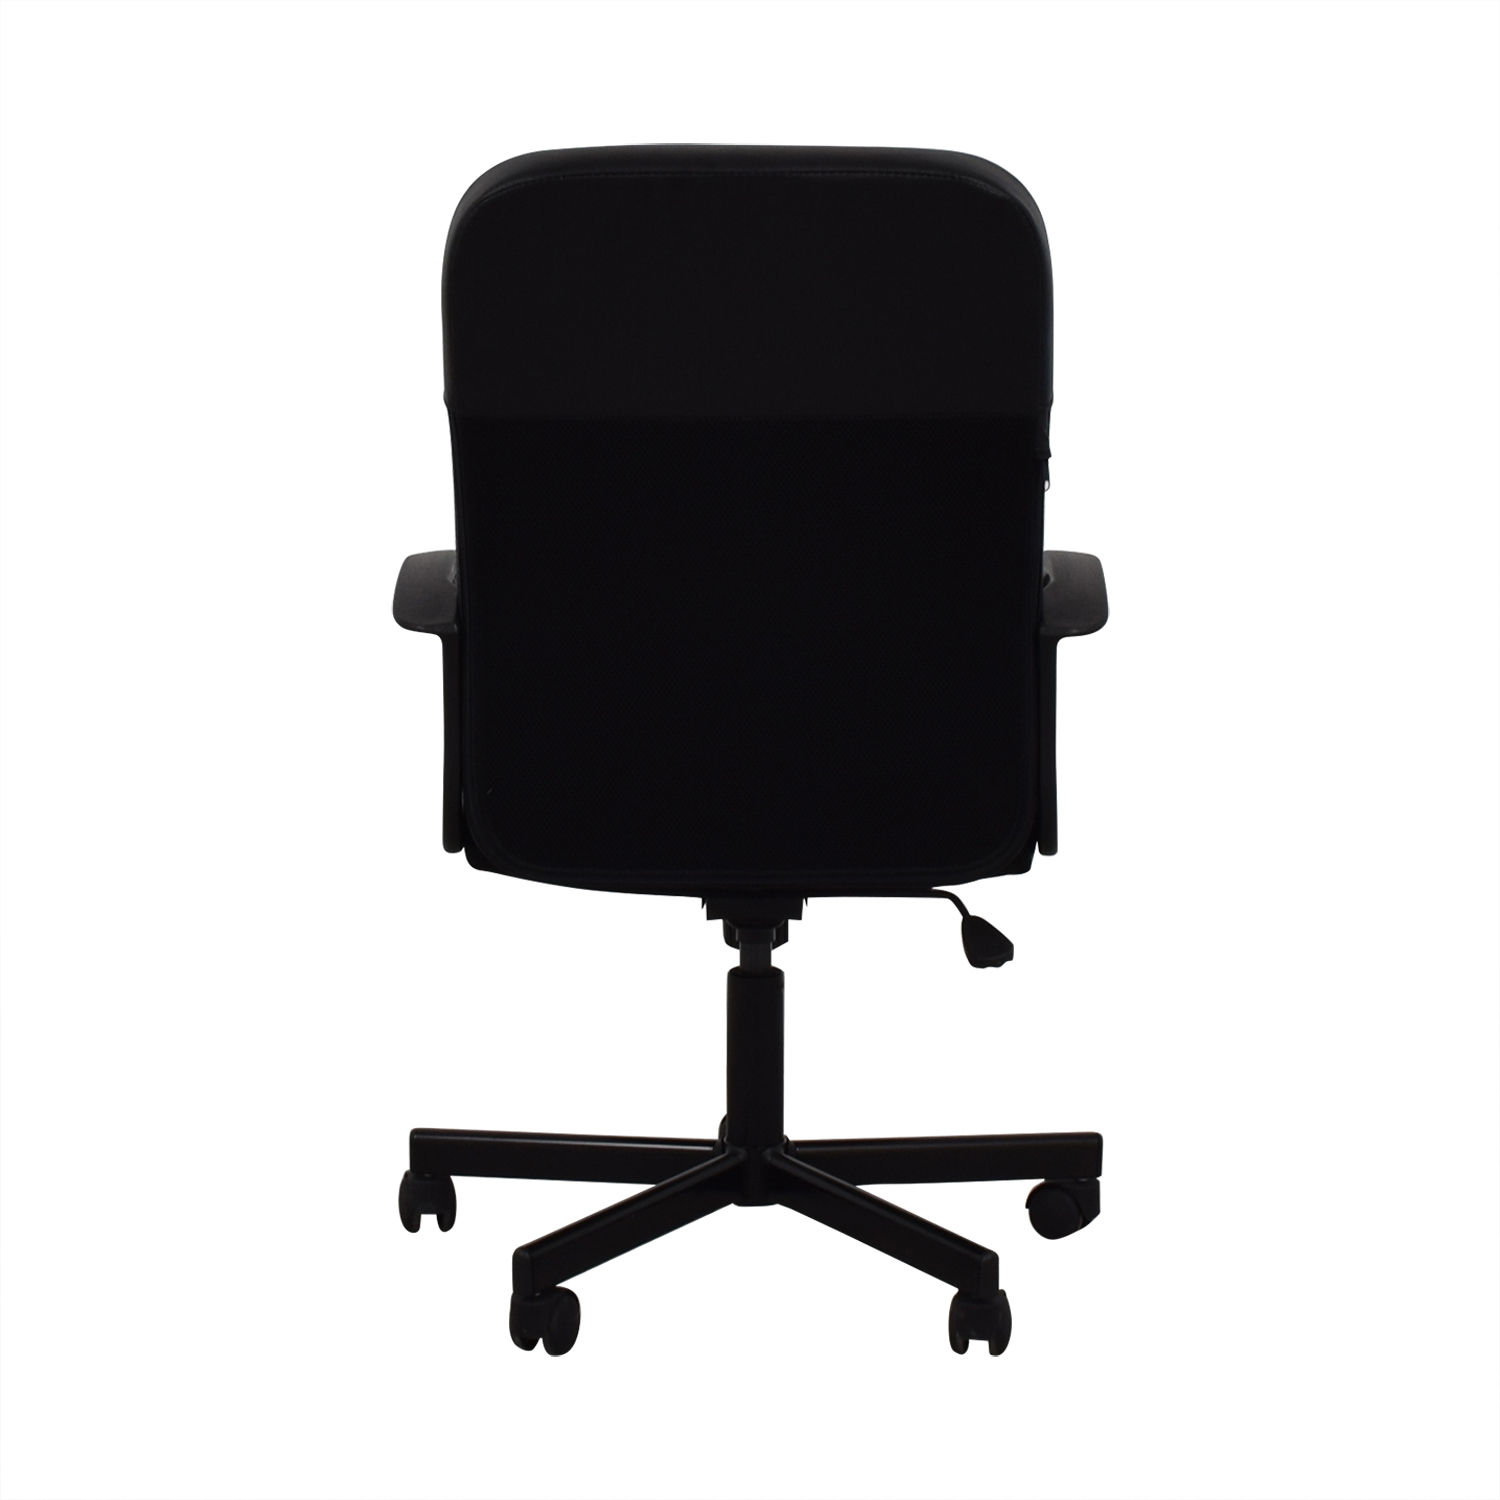 IKEA IKEA Renberget Office Chair coupon